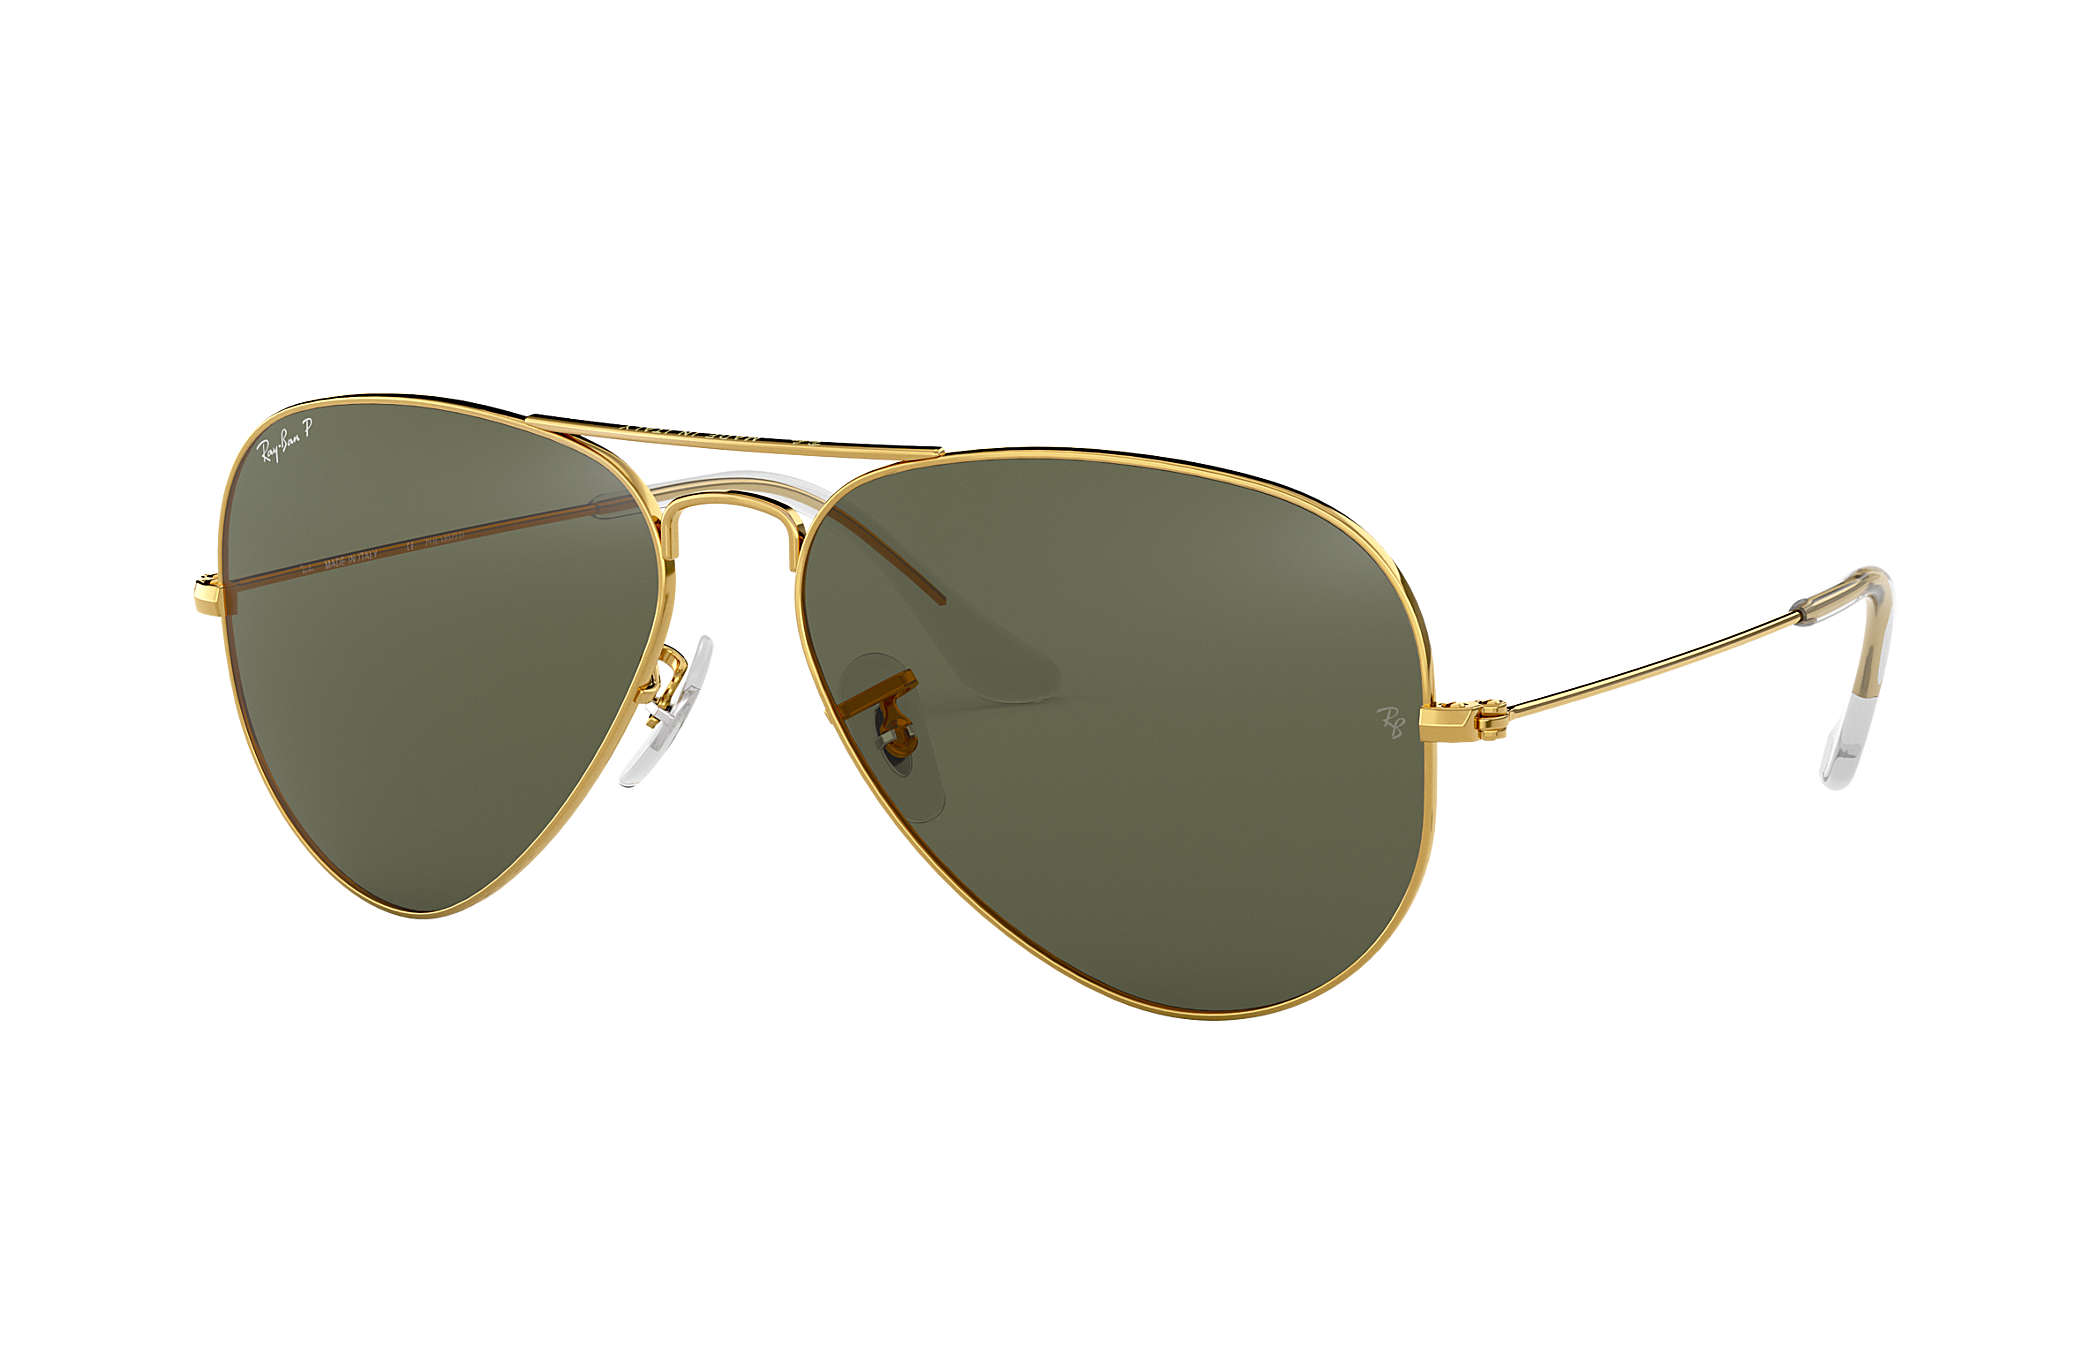 d1a18df0ee133 Ray-Ban Aviator Classic RB3025 Gold - Metal - Green Polarized Lenses ...